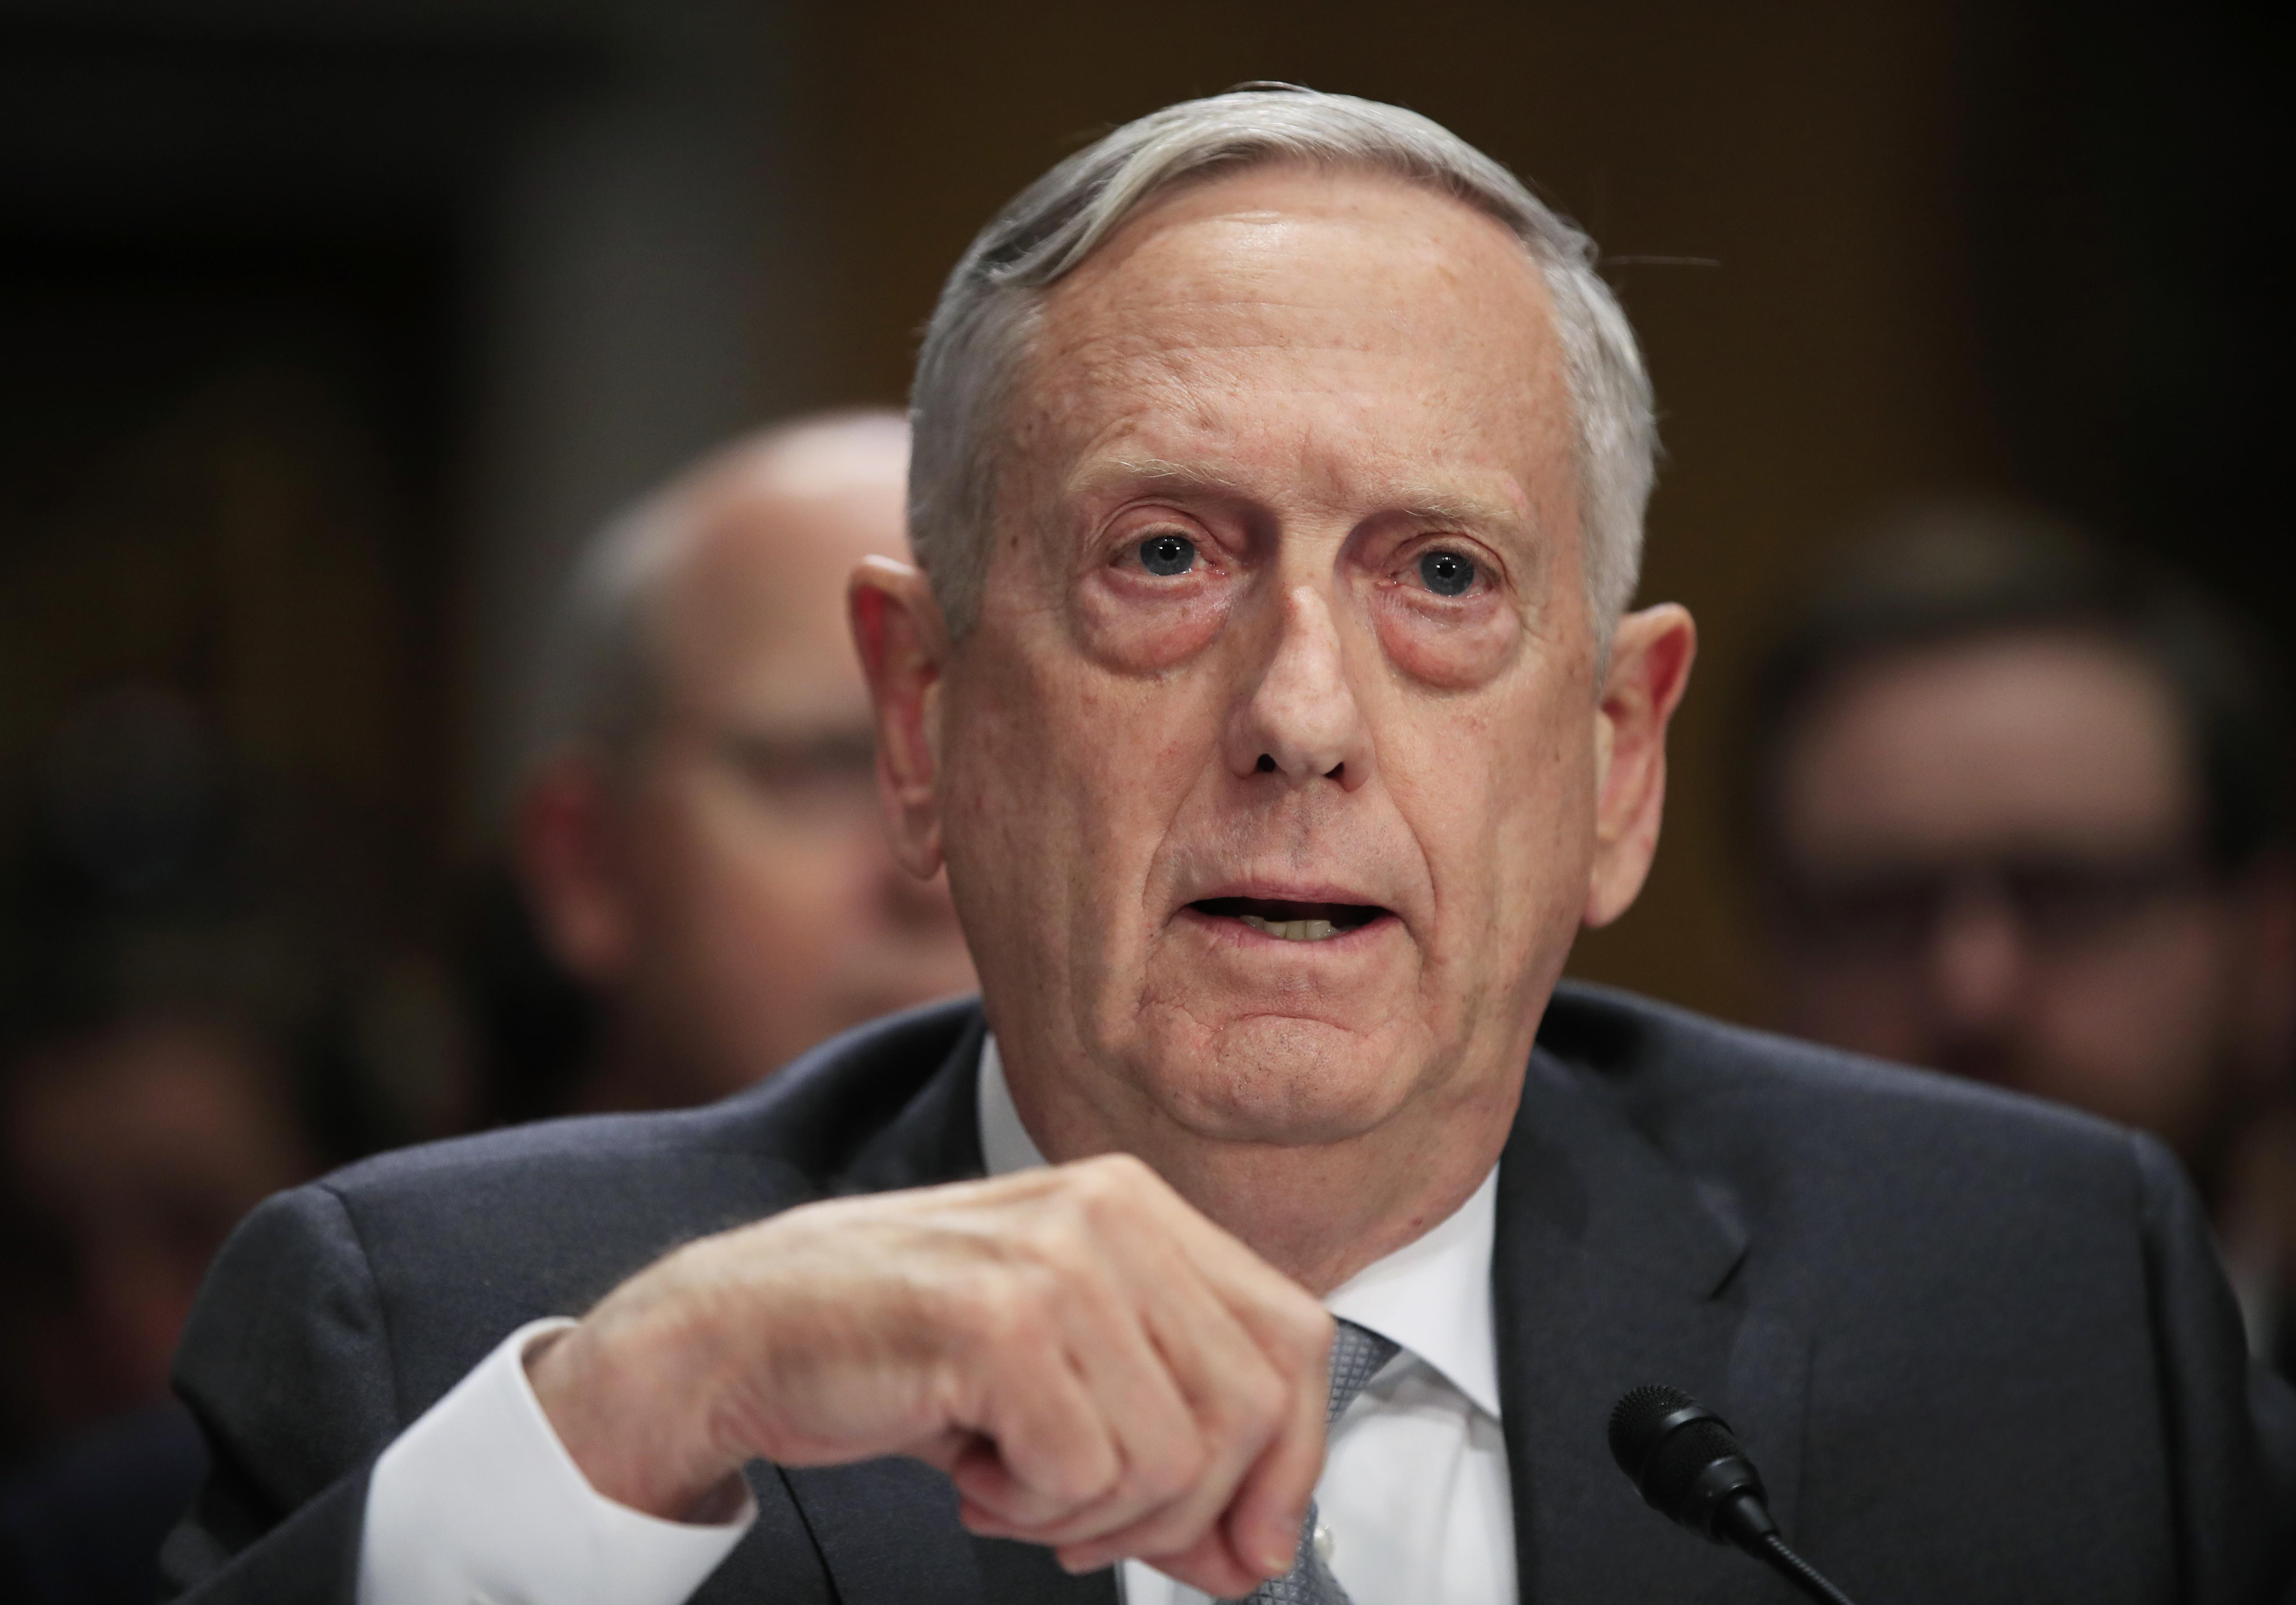 James Mattis Bio News s Washington Times